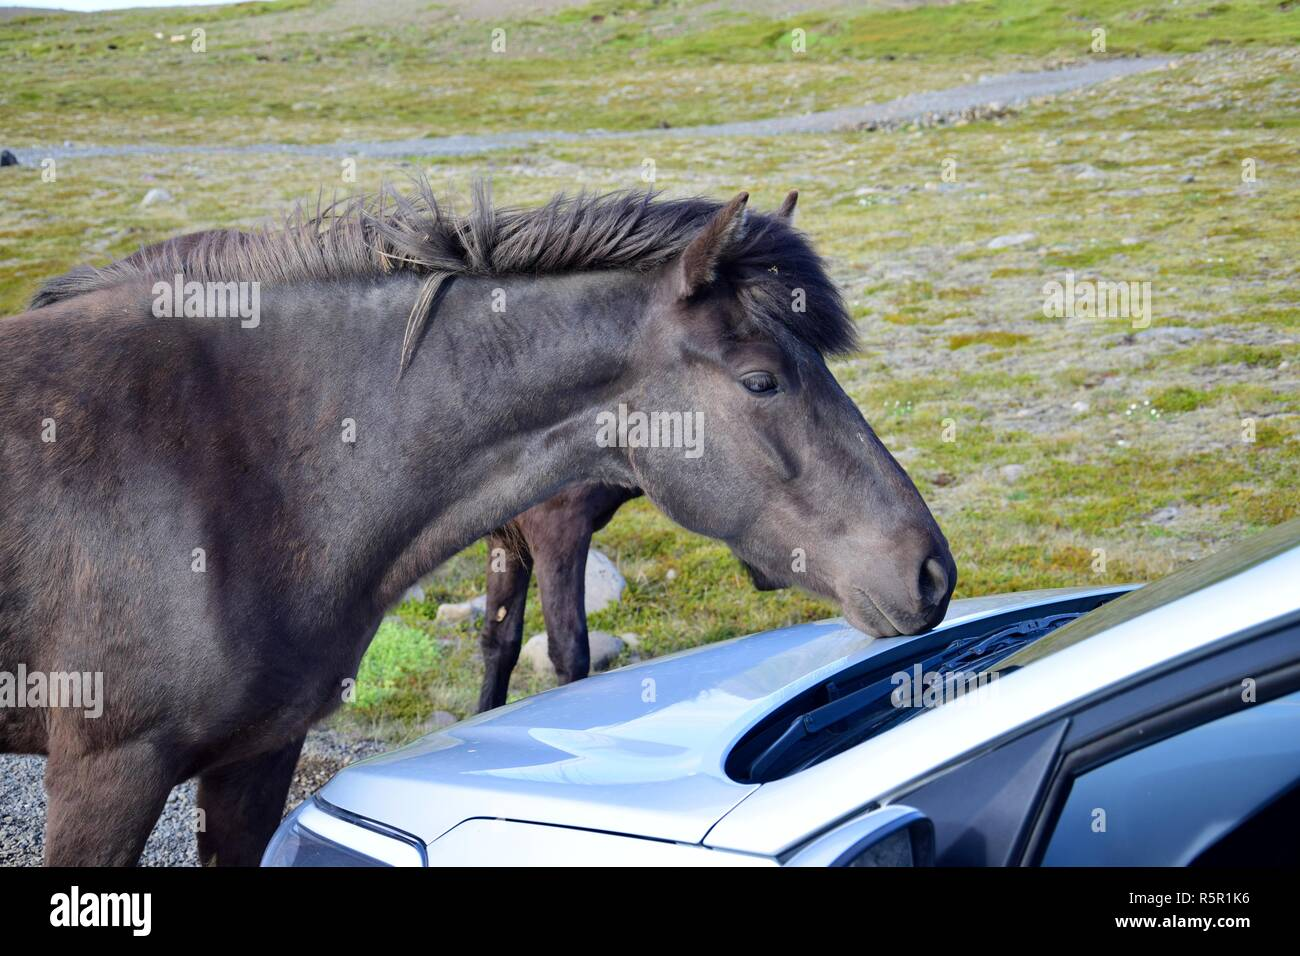 A black Icelandic horse on a gravel road in Iceland is curiously examining a car. A group of horses was free running in the north of peninsula Skagi. - Stock Image